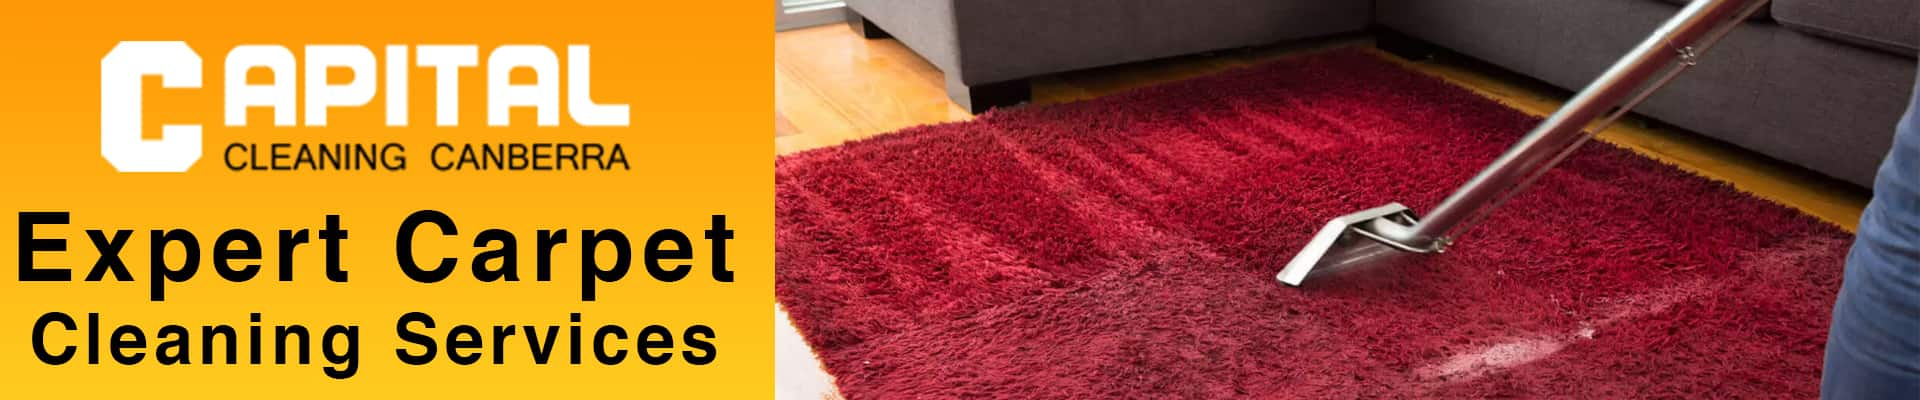 Expert Carpet Cleaning Services Yarrow